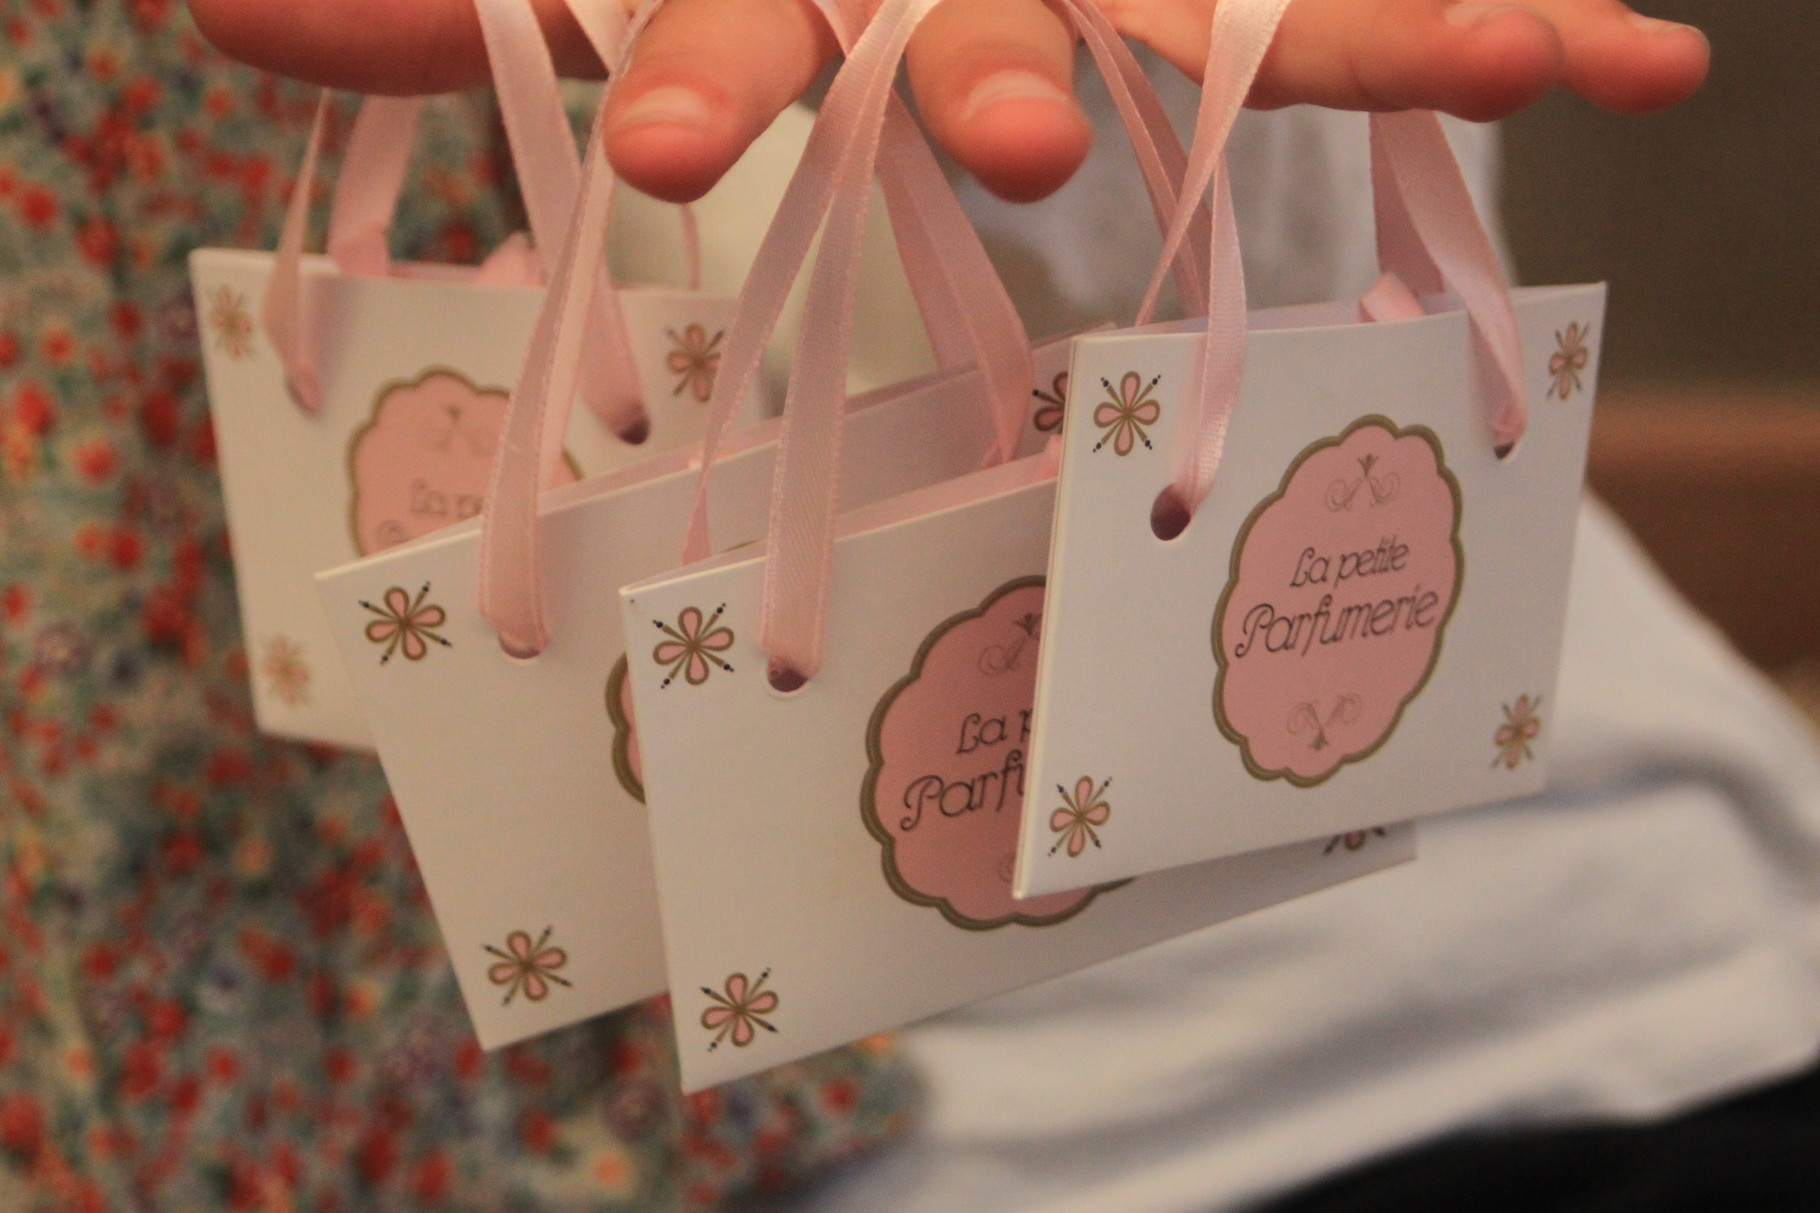 Bags from the little perfumery shop